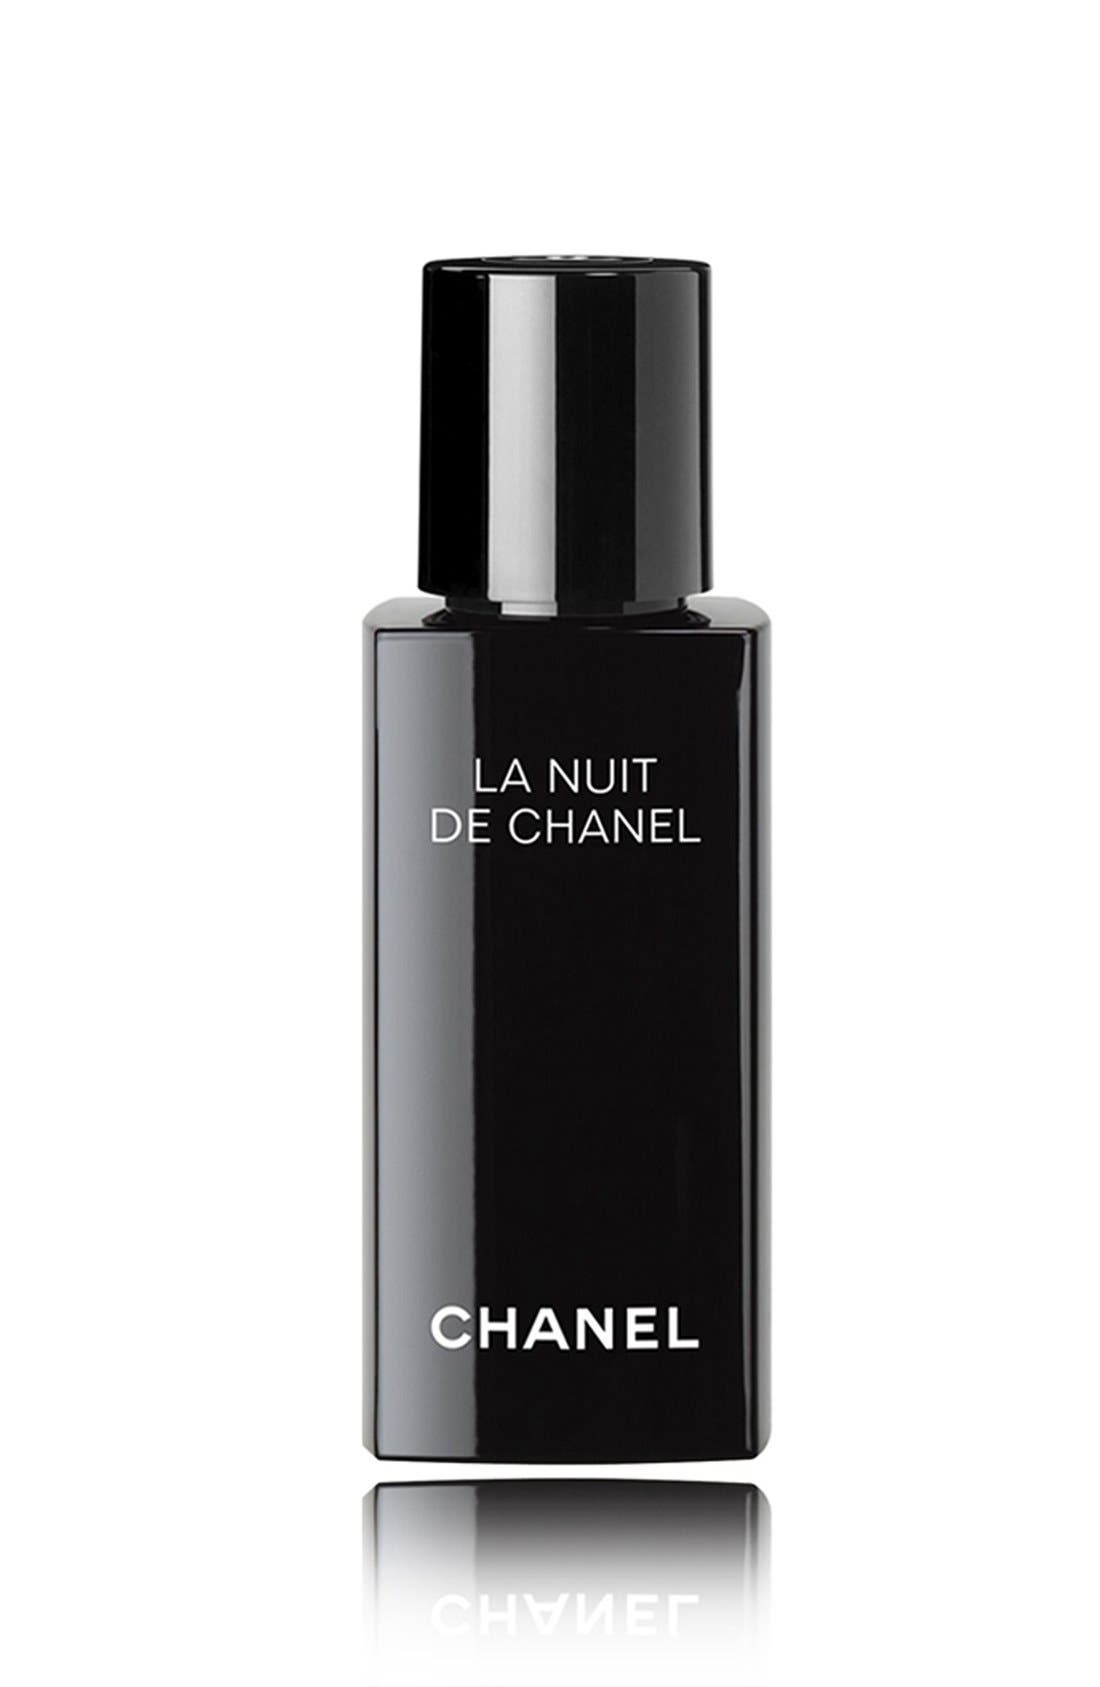 CHANEL LA NUIT DE CHANEL 